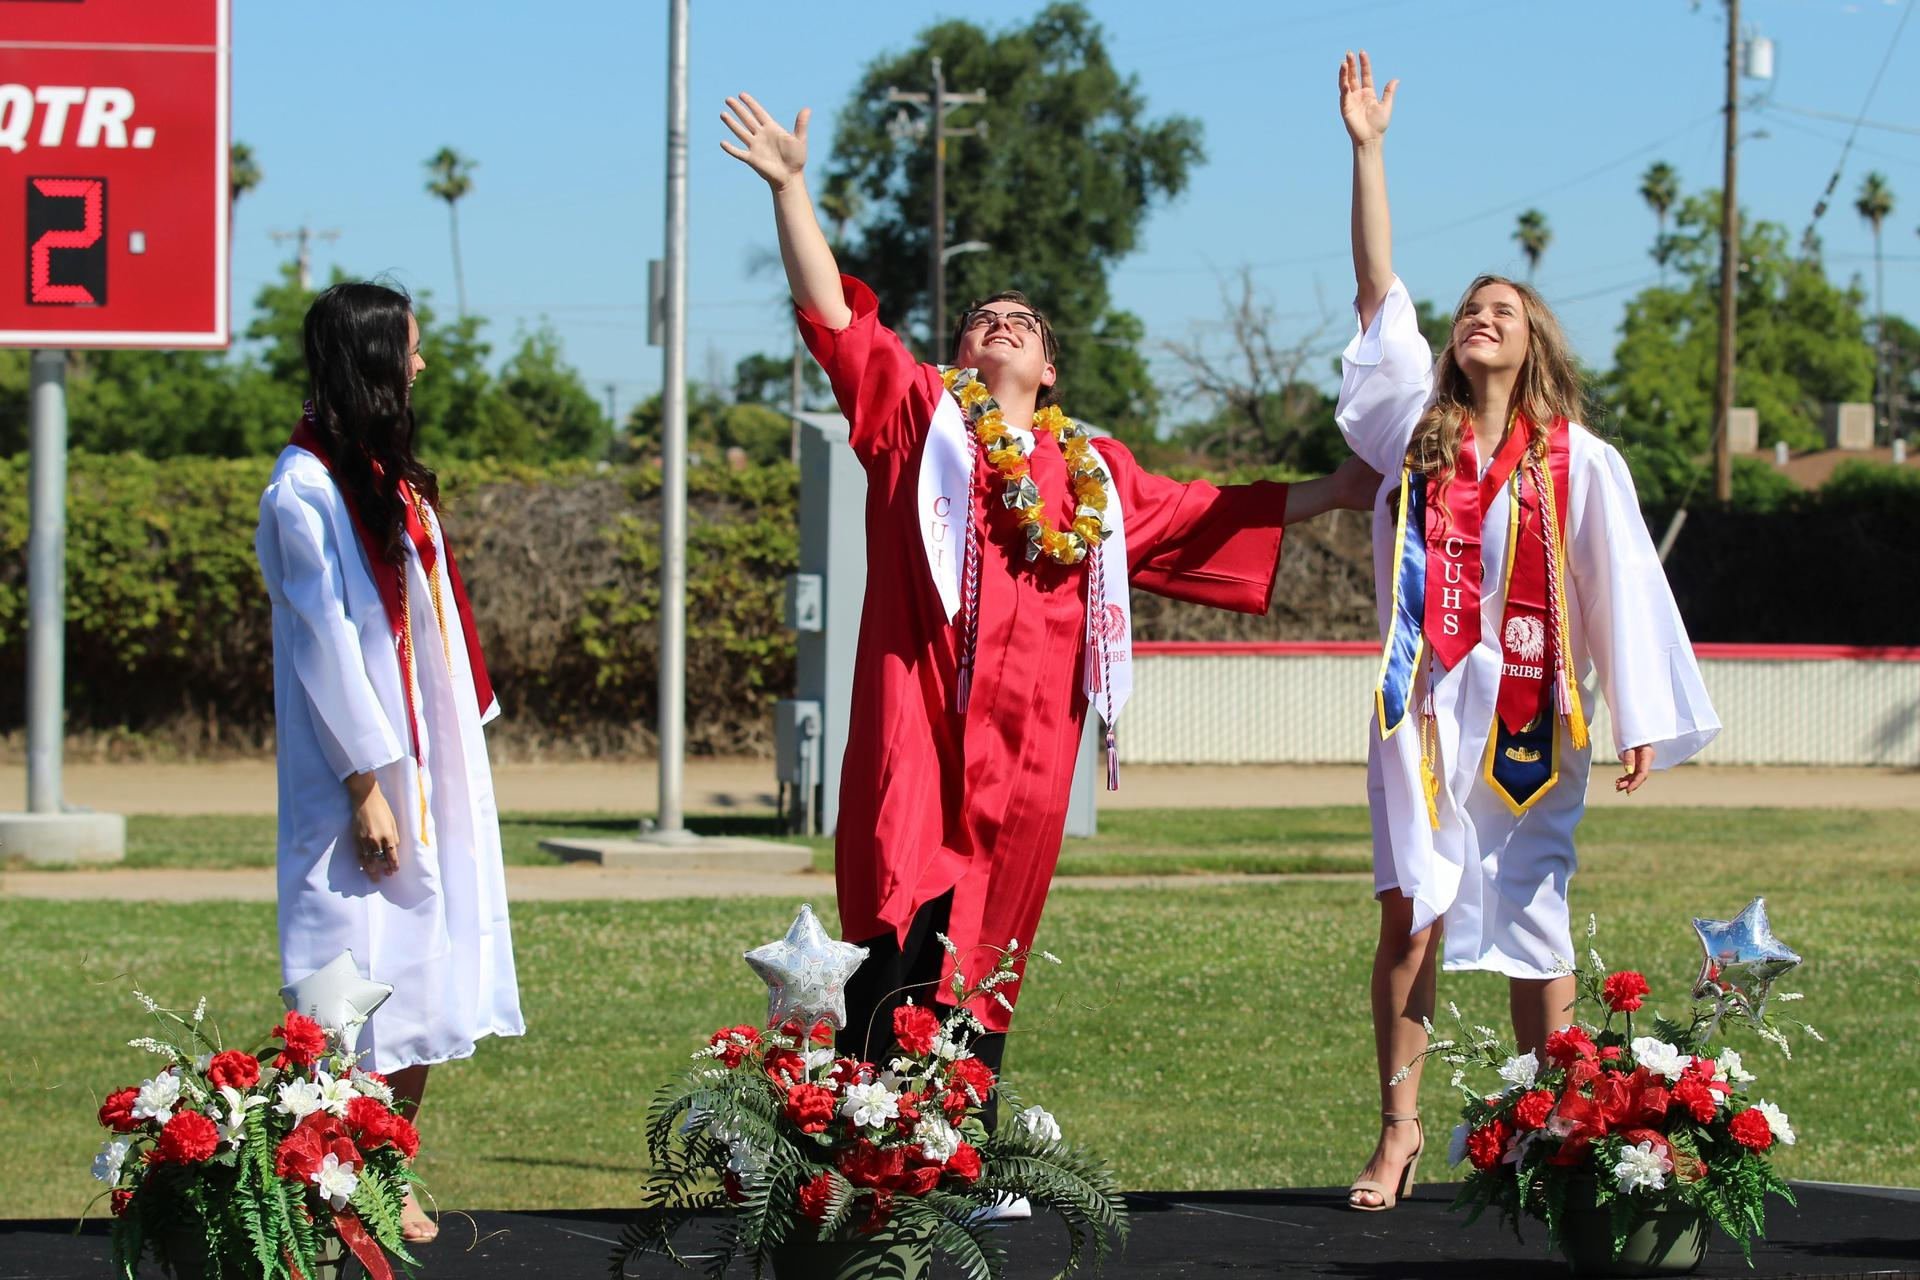 Left to right, Class President Andrea Jimenez, ASB Co-President Noah Linhares, and ASB Co-President Christina Fuller lead the Class of 2020 in the turning of the tassels